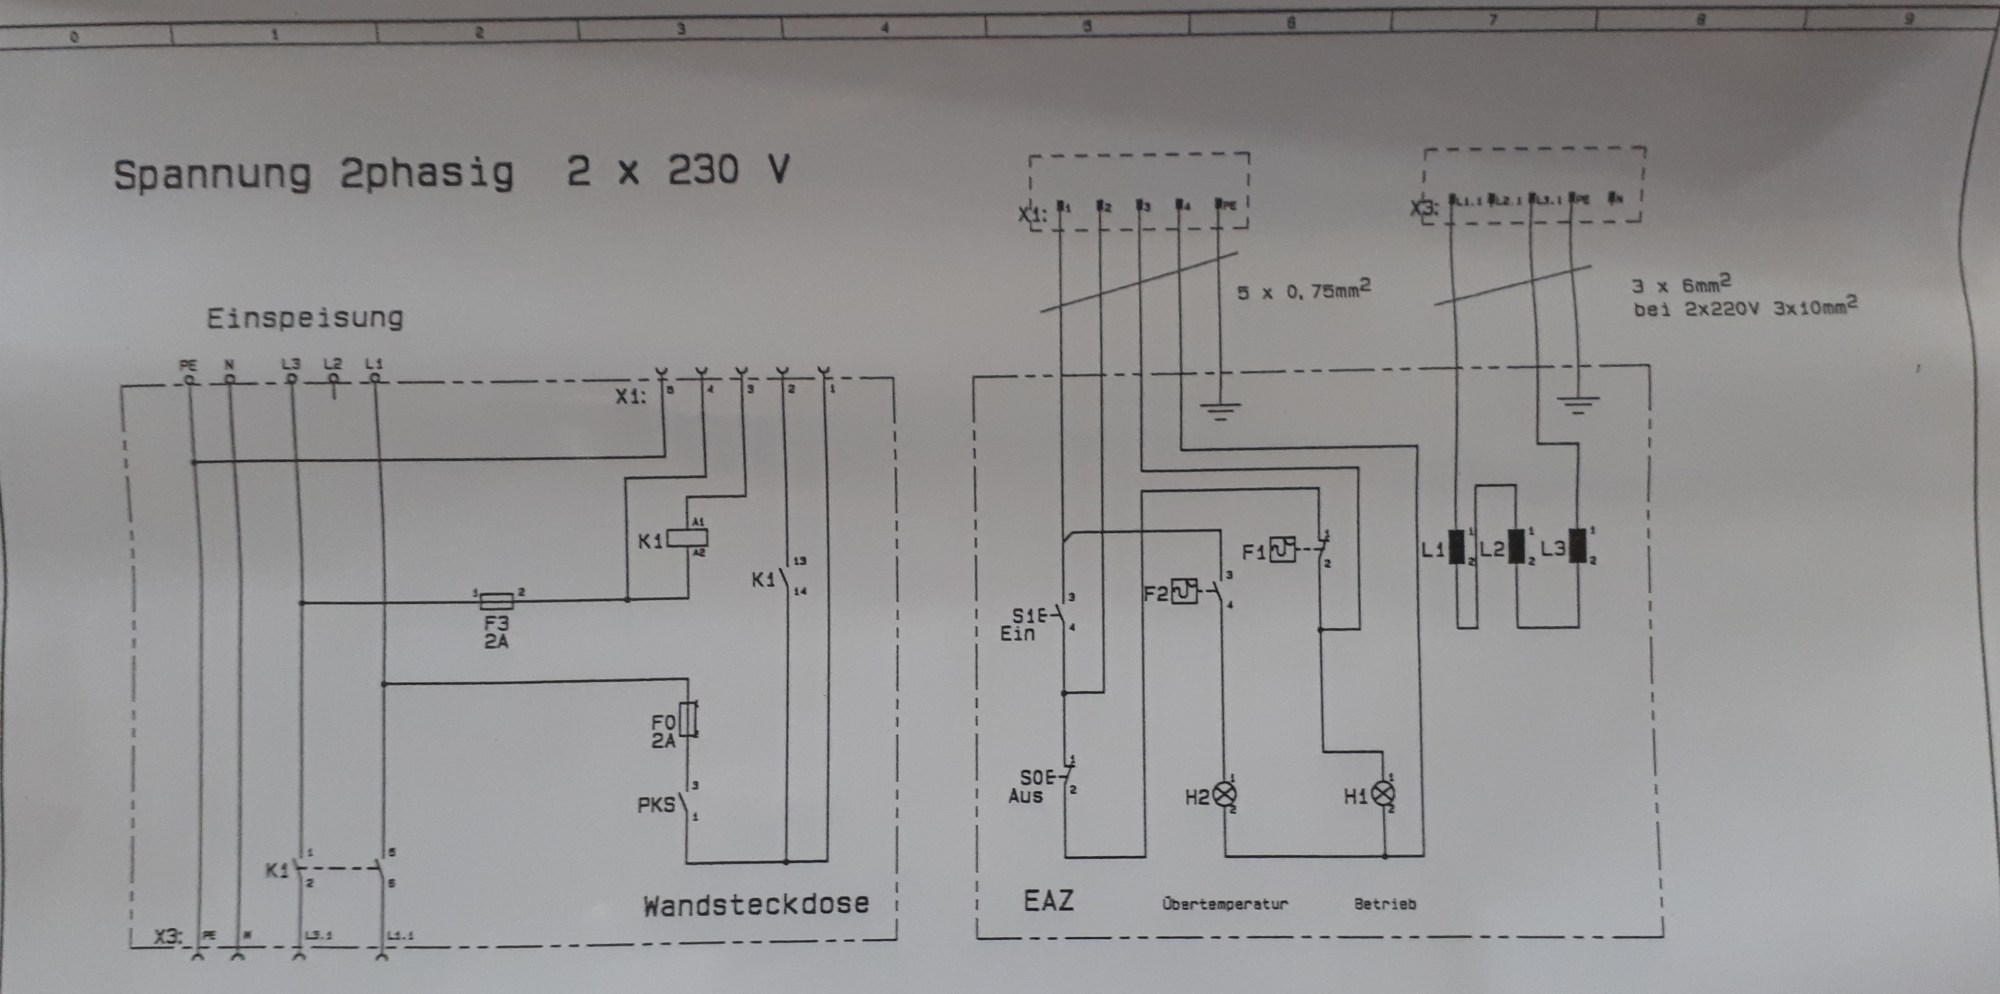 hight resolution of 3 wire phase to 220v wiring diagram delta data diagram schematic3 phase 380 v to 3